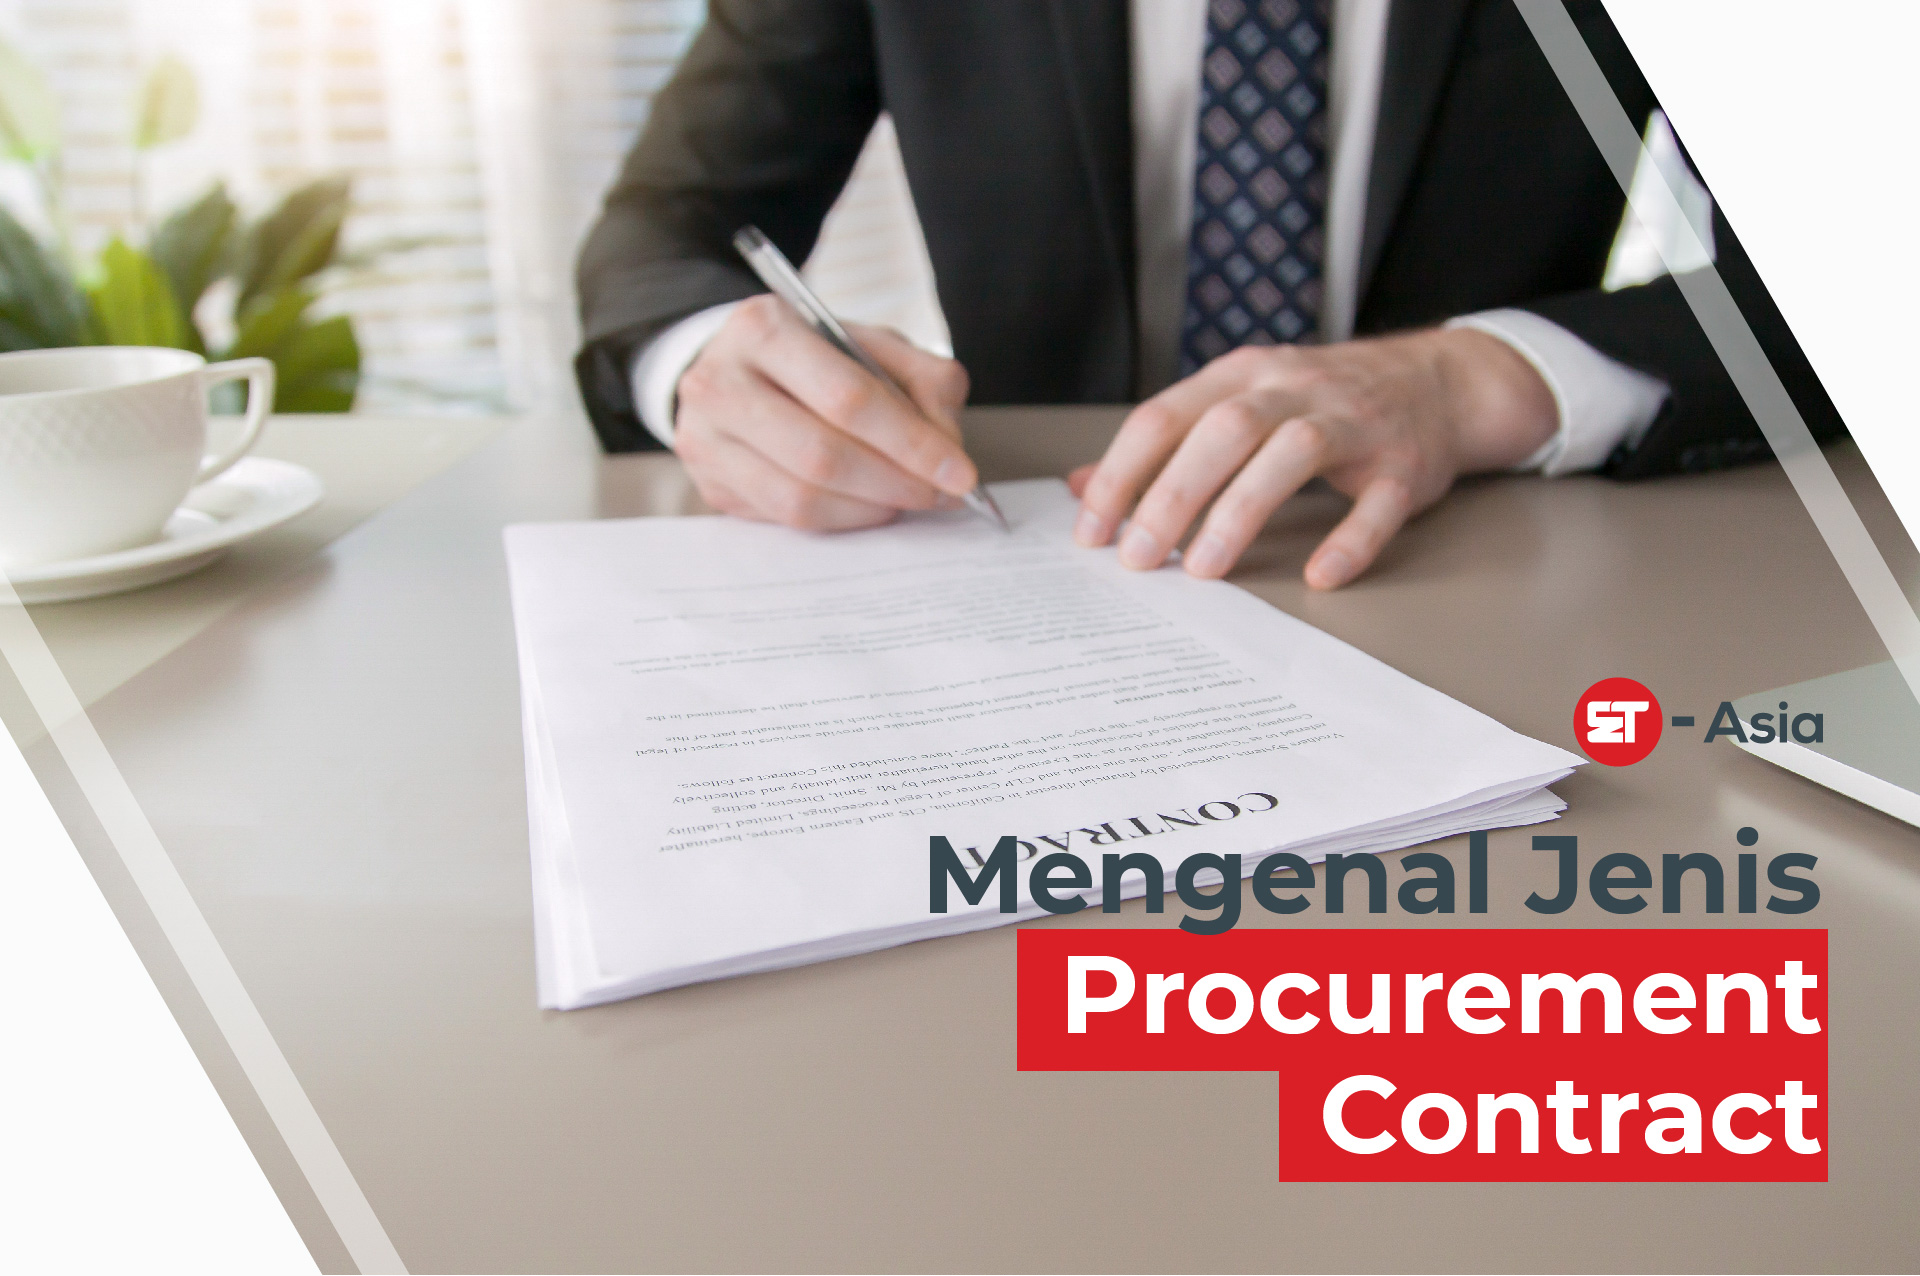 MENGENAL JENIS PROCUREMENT CONTRACT